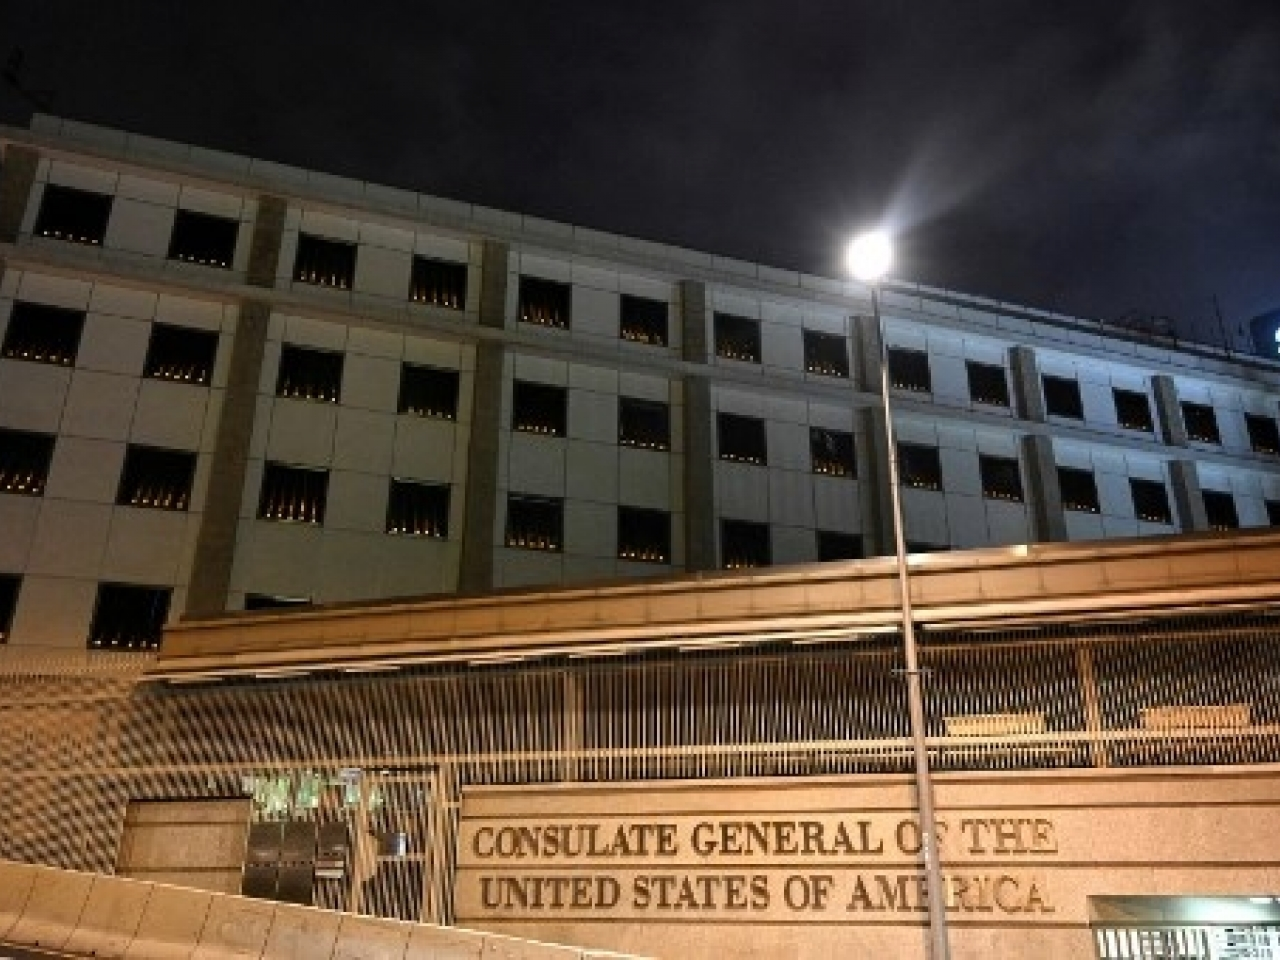 Scores of candles were seen lit in the windows of the US consulate building on Friday night. Photo: AFP